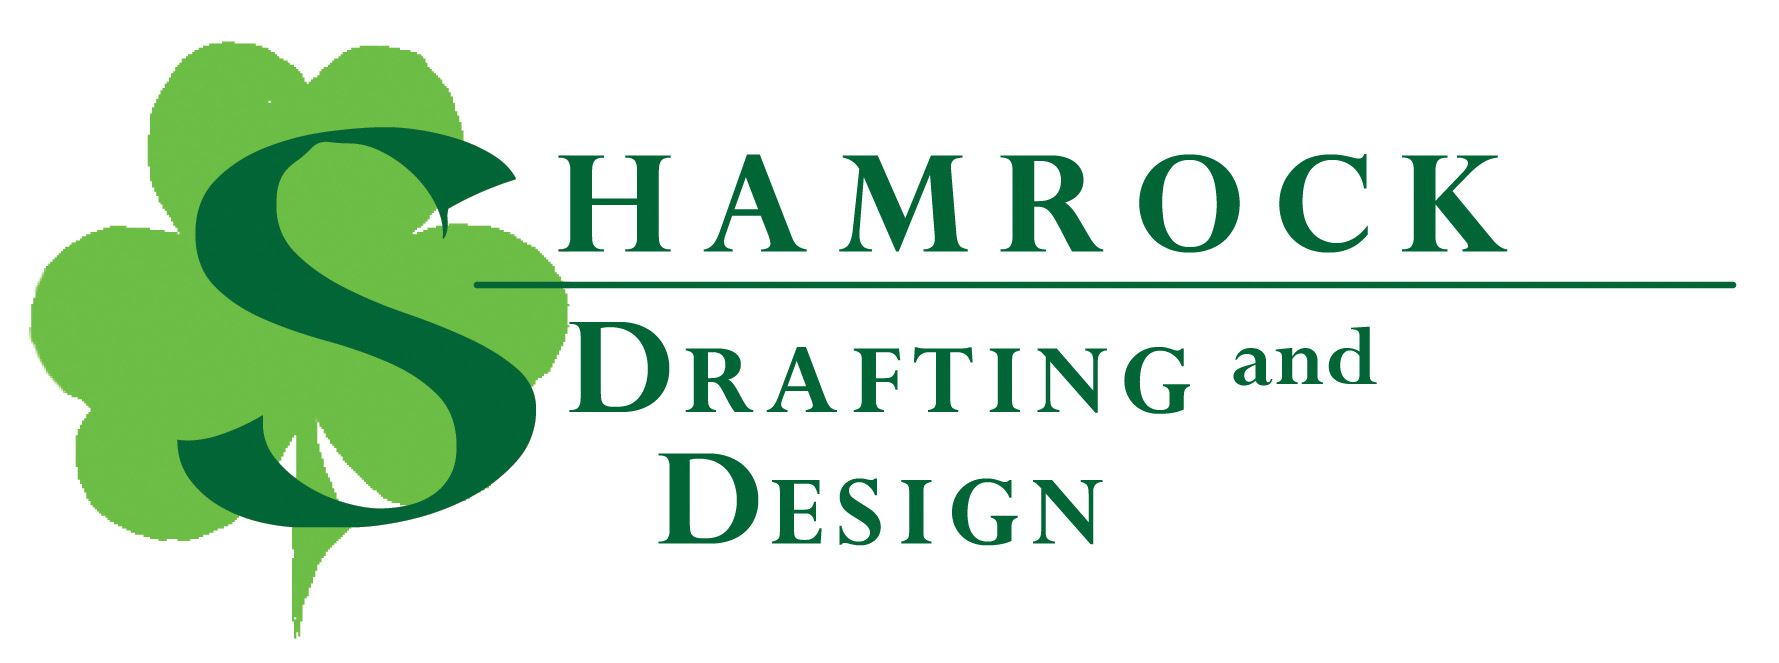 Shamrock Drafting and Design